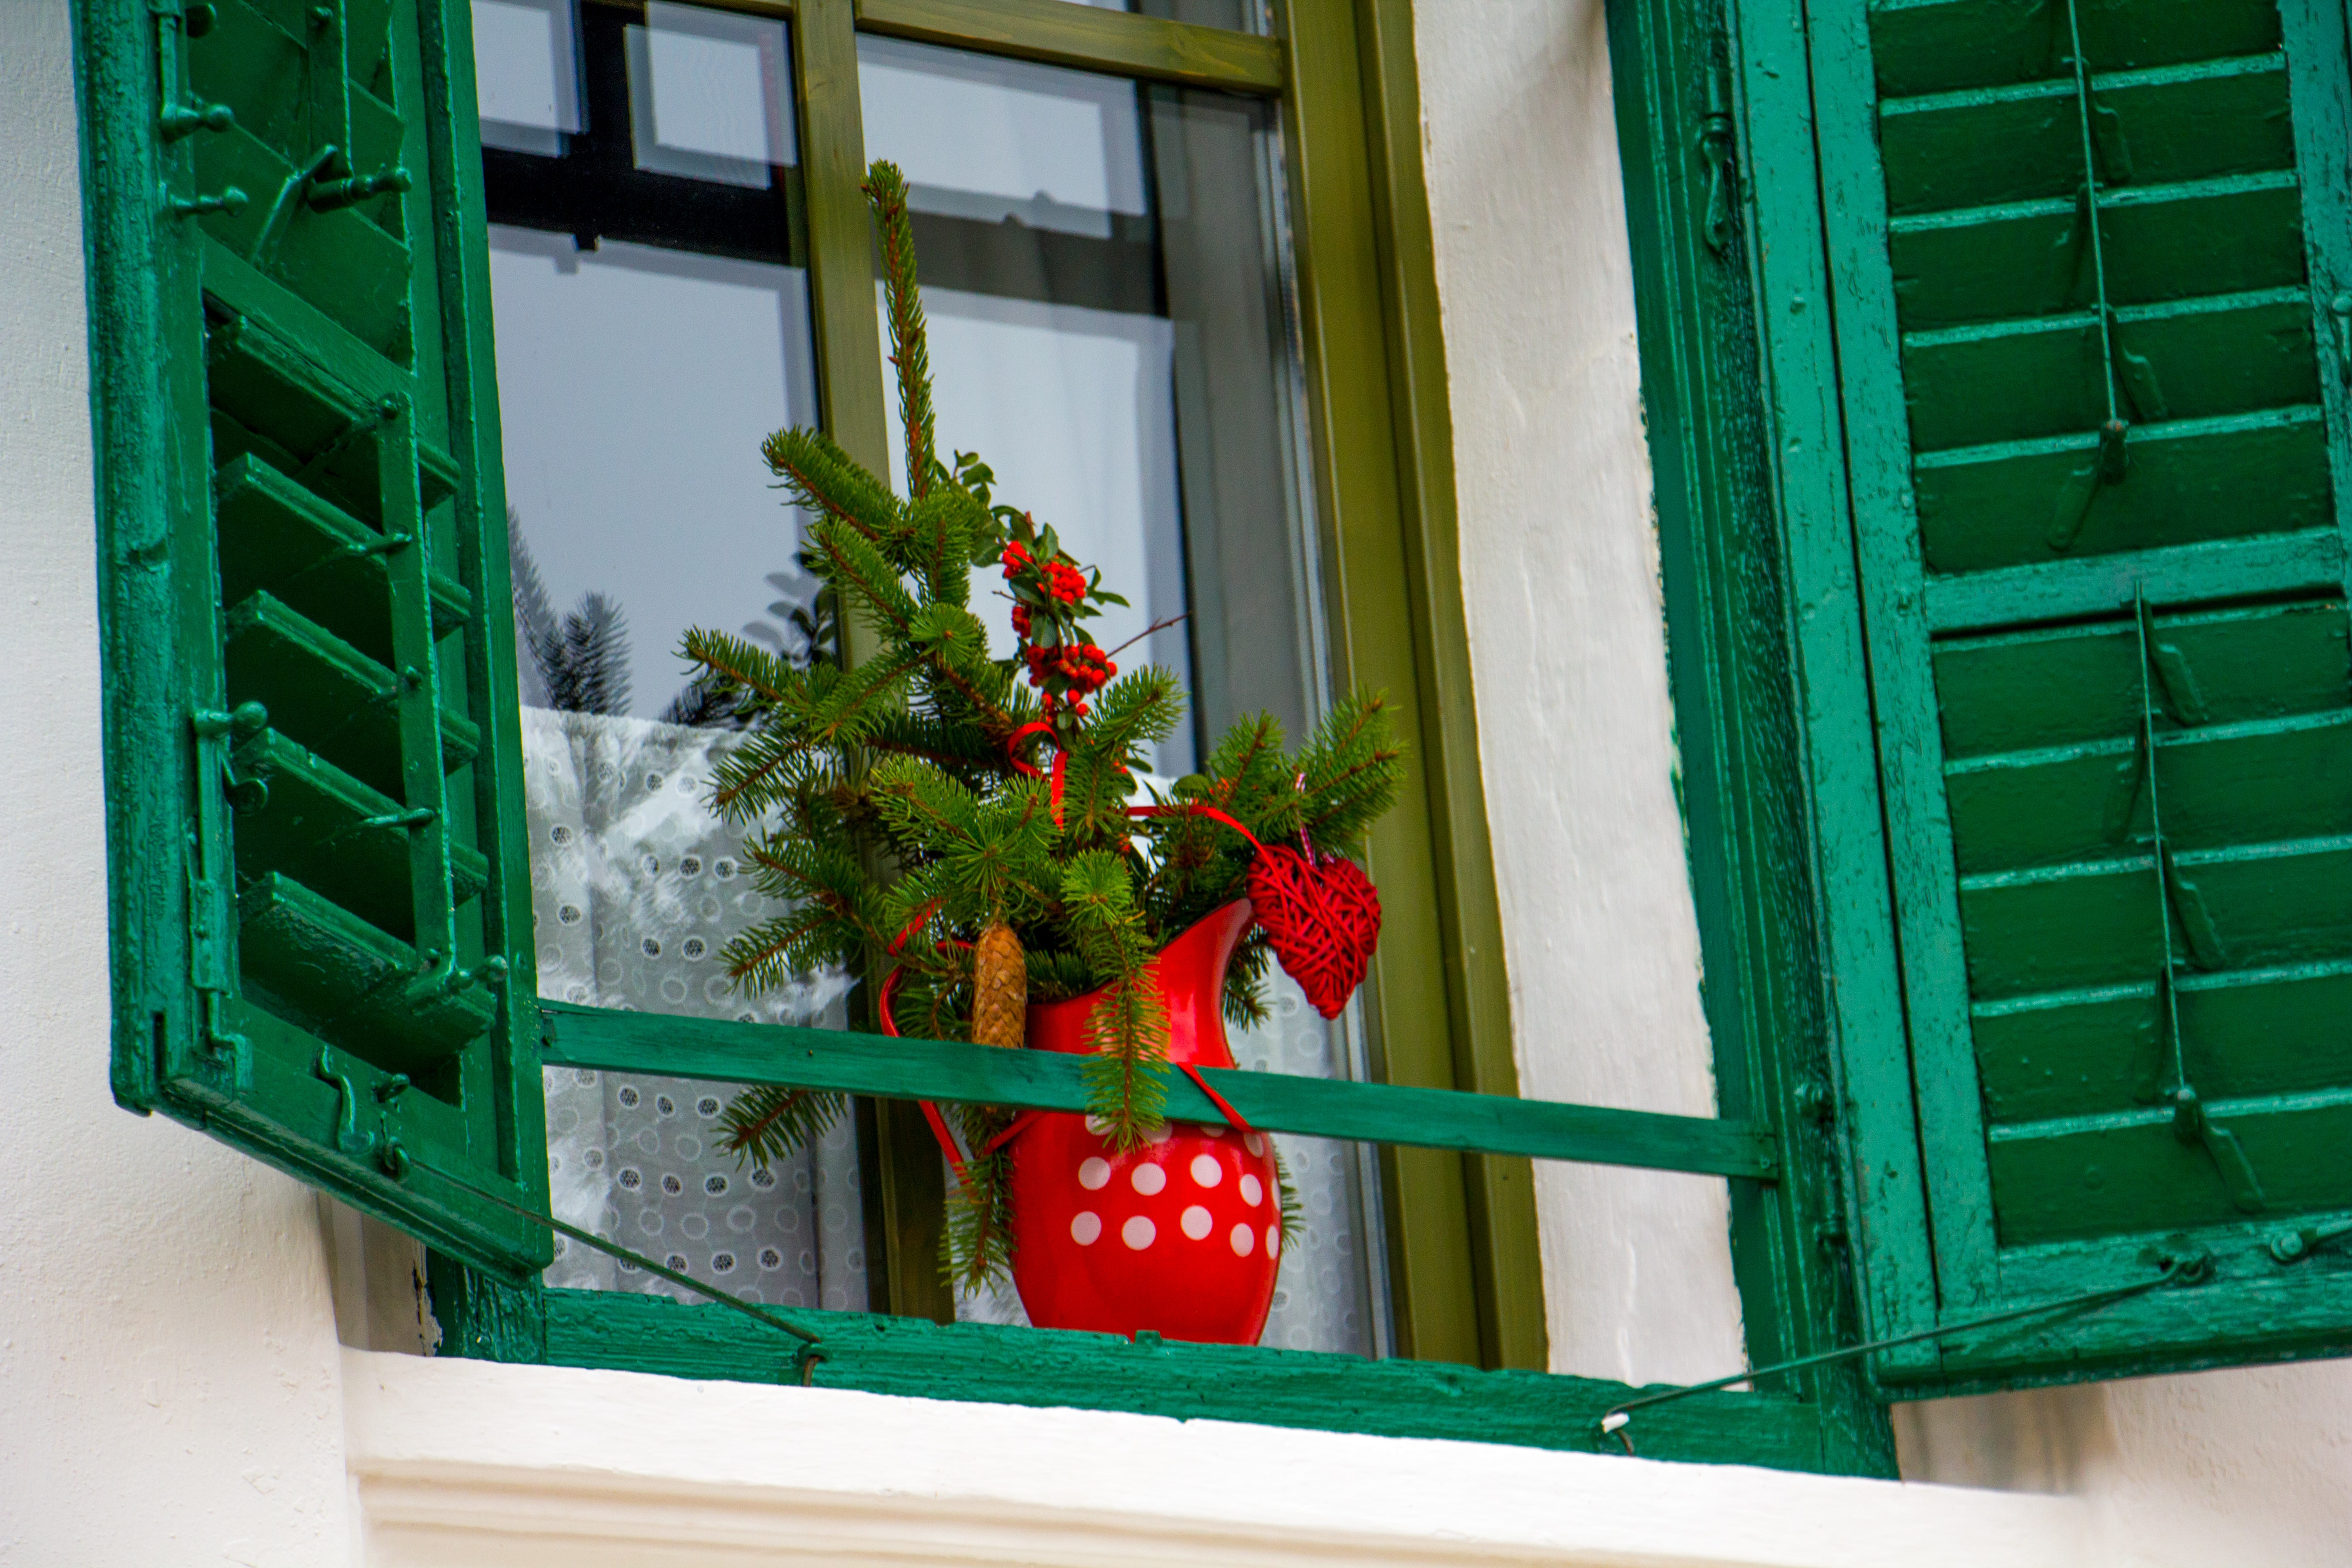 green leafed plant in red vase across window